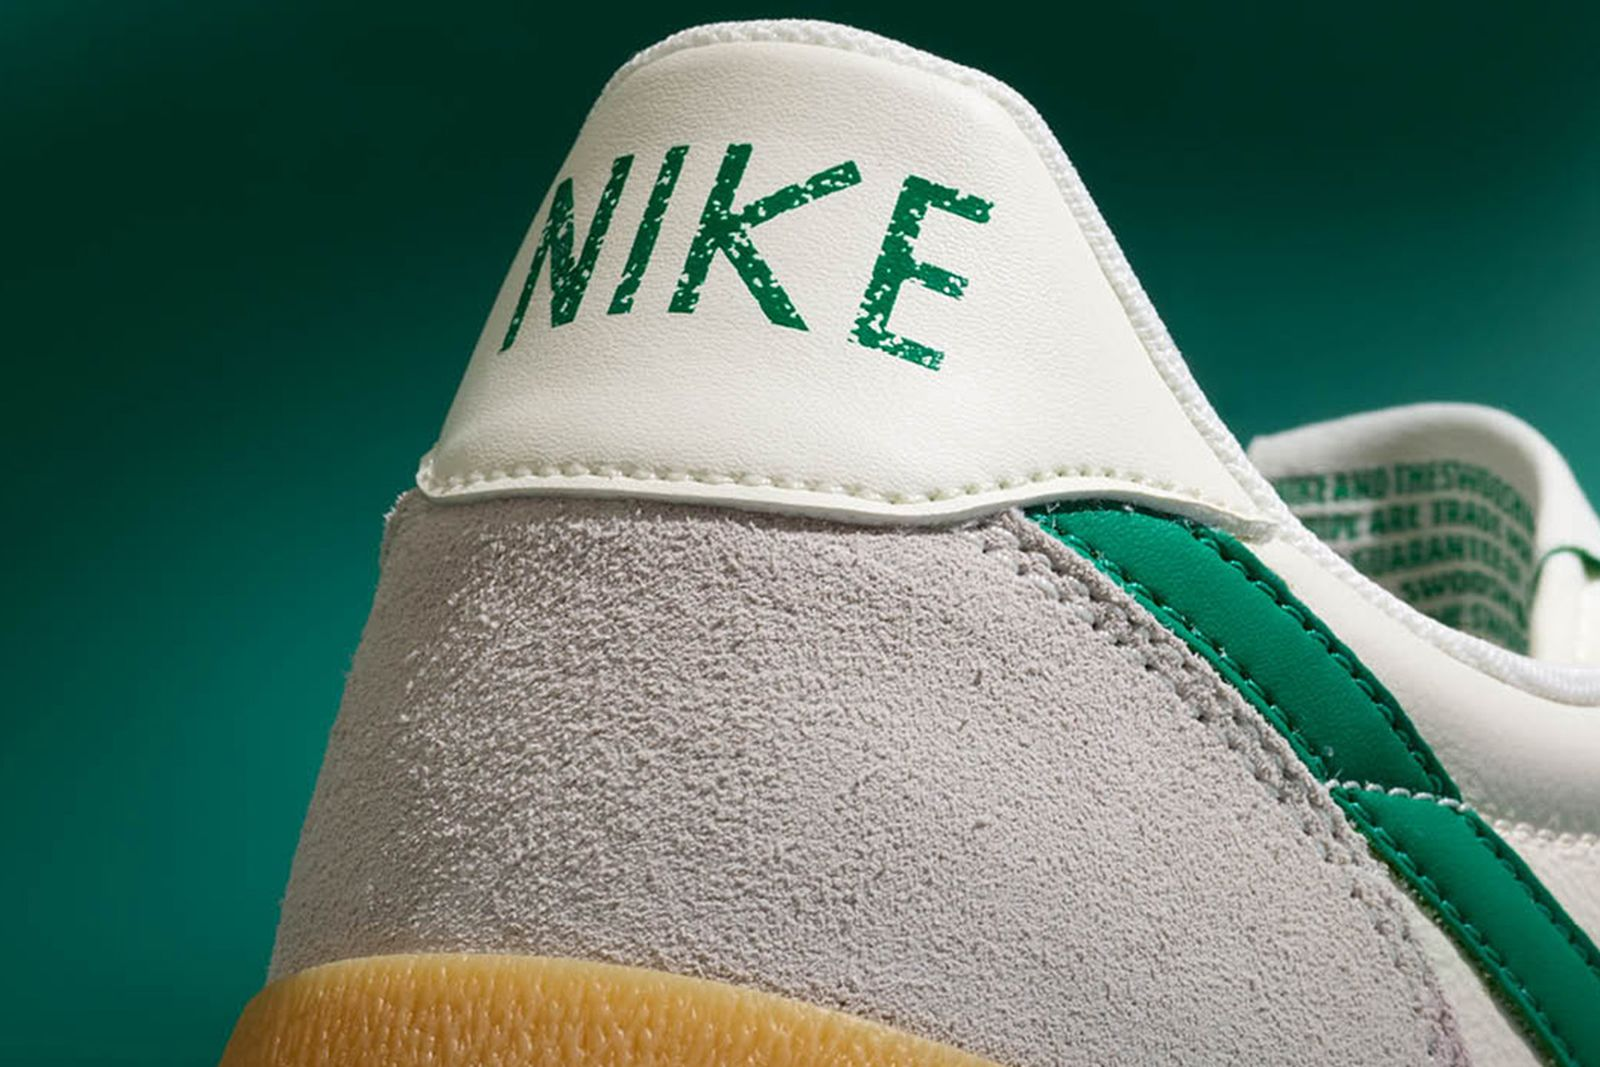 Apoyarse Botánica Comprensión  J. Crew x Nike Killshot Sail/Green: Where to Buy Today